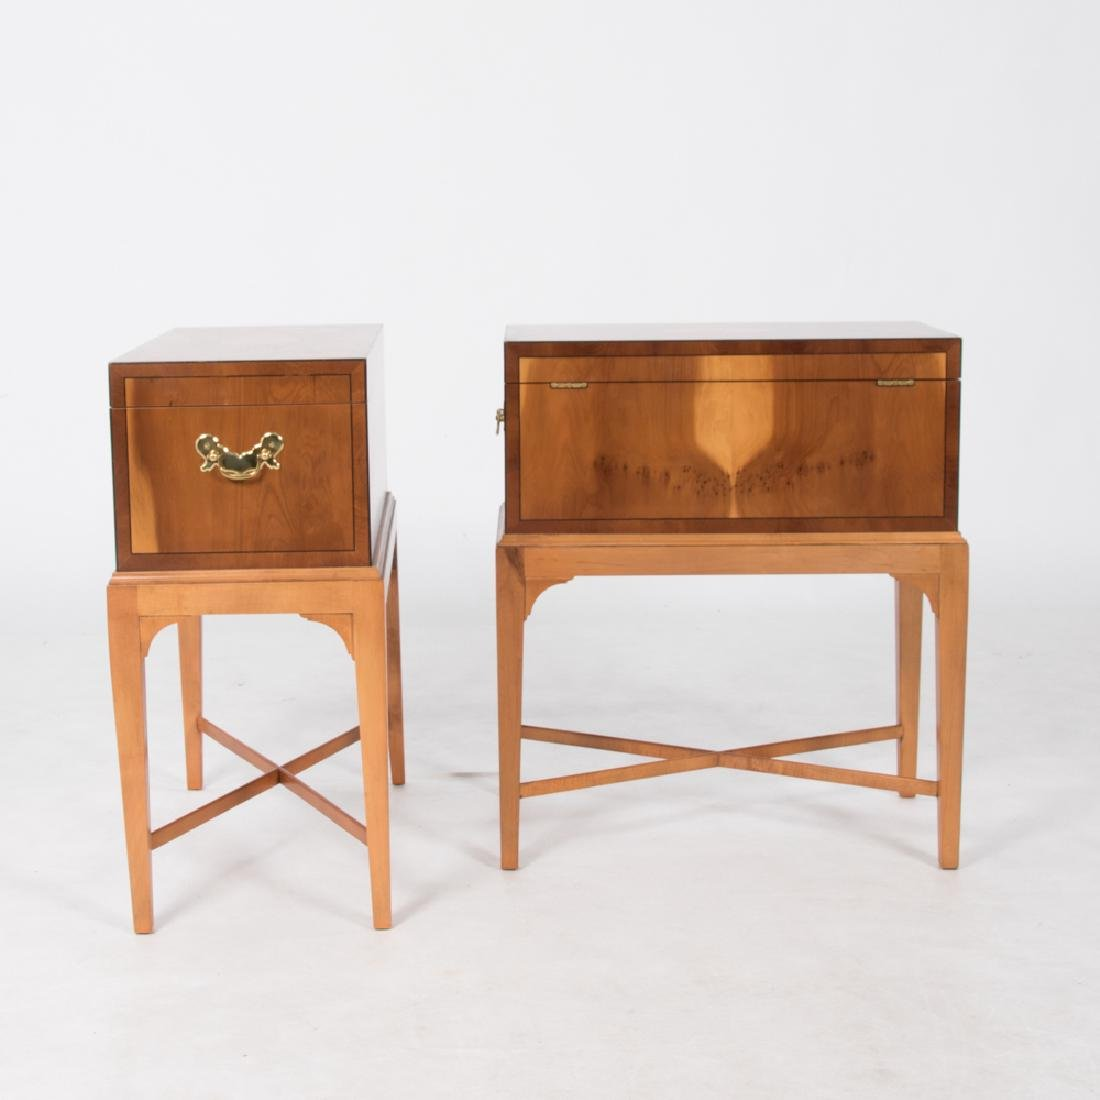 A Pair of Baker Furniture Georgian Style Fruitwood - 6